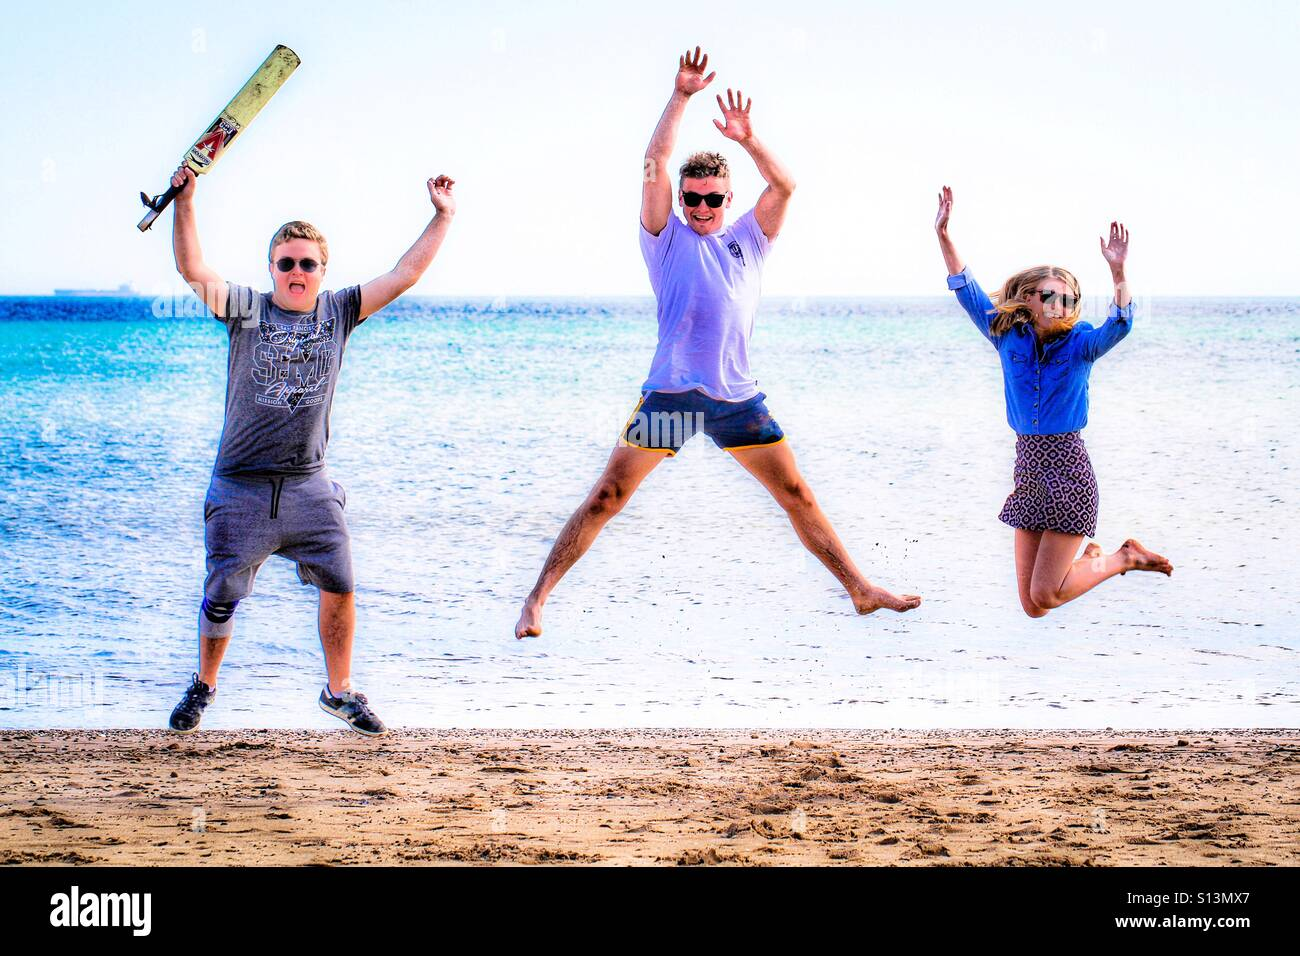 Three young teenagers having fun on a sandy beach and jumping high in the air together. - Stock Image